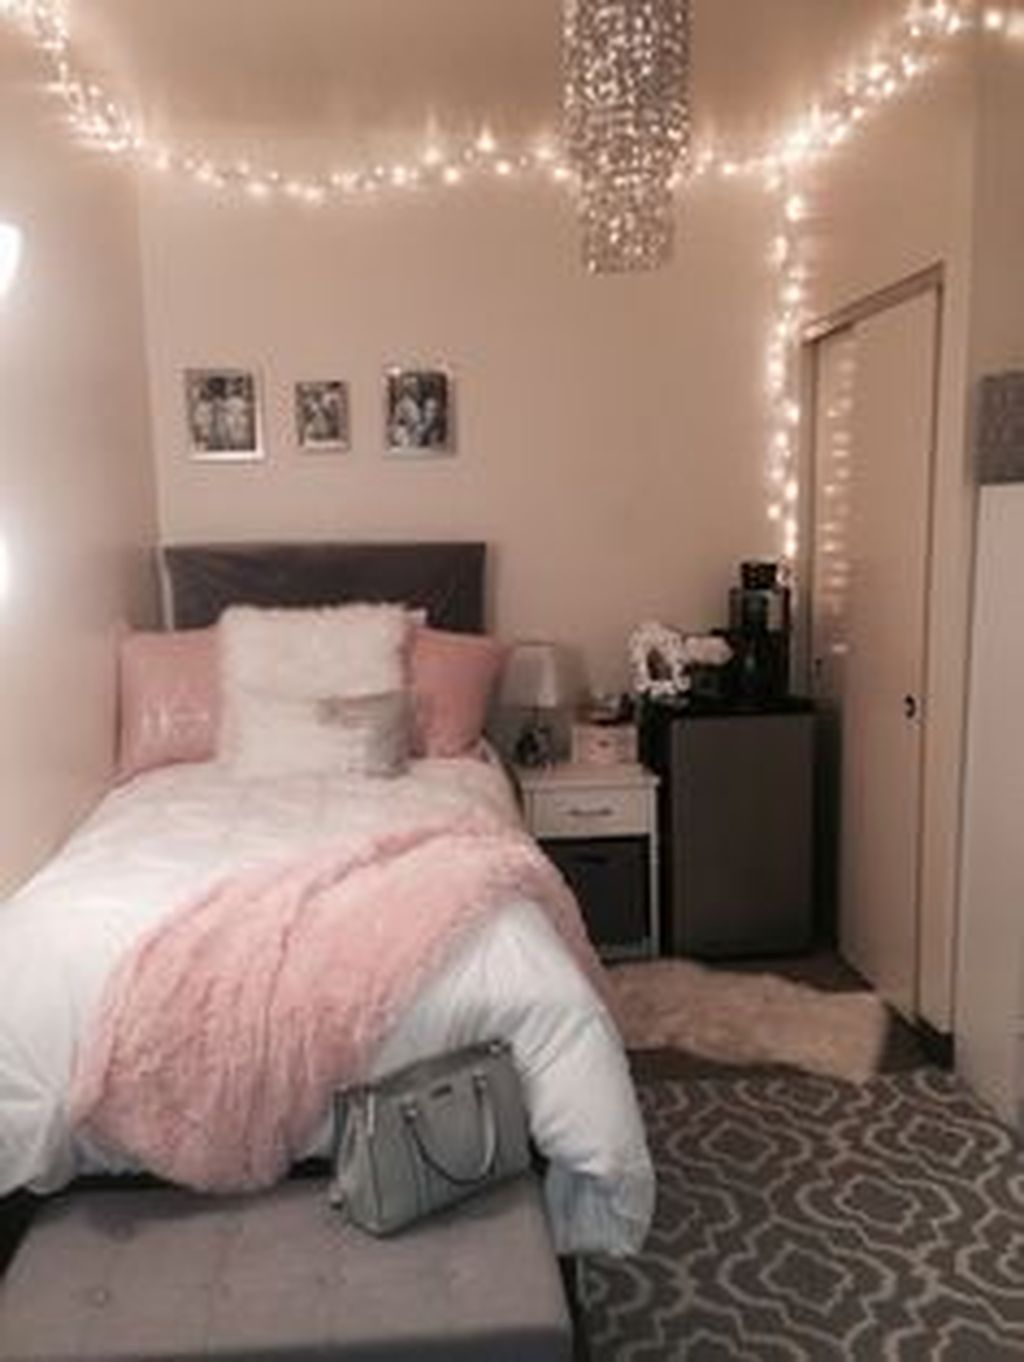 20 Splendid Small Bedroom Ideas For Teens Dorm Room Decor